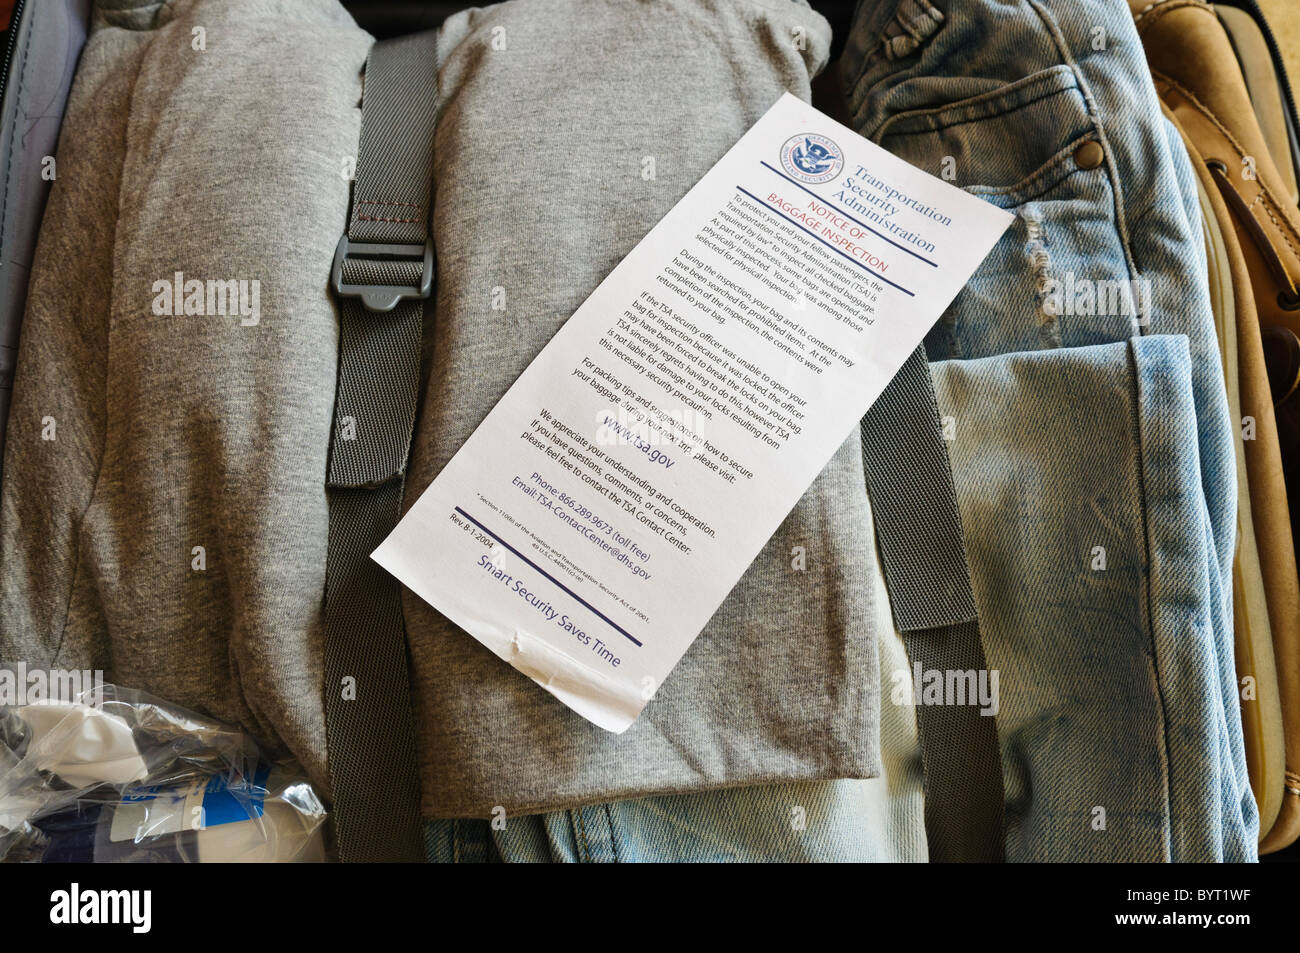 TSA Notice of Baggage Inspection inside a suitcase with clothes - Stock Image